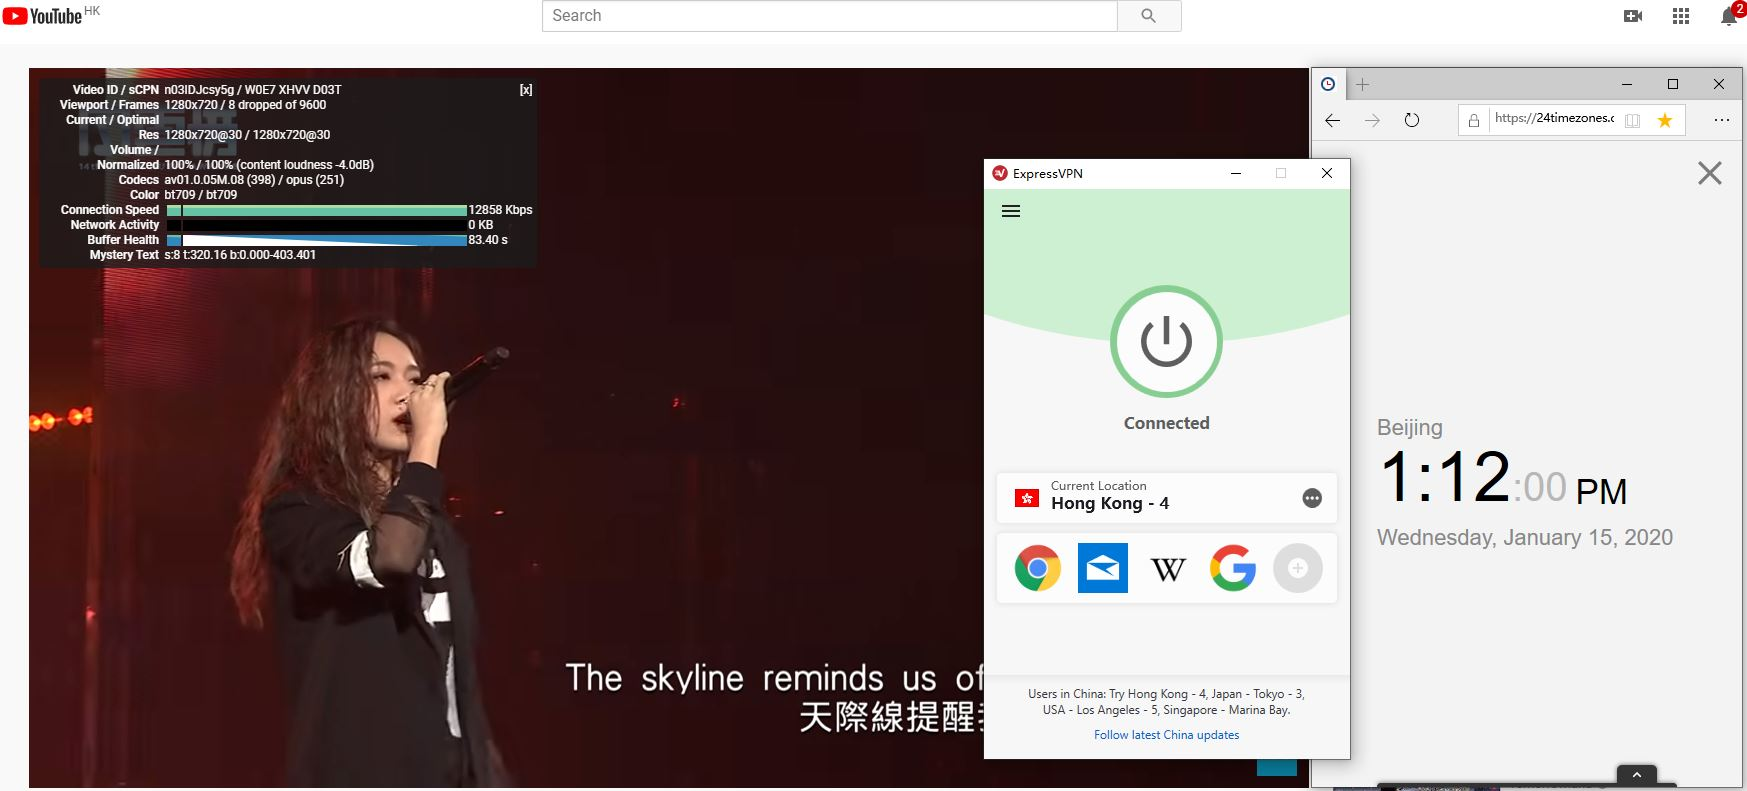 Windows10 ExpressVPN Hong Kong - 4 中国VPN翻墙 科学上网 YouTube连接速度 VPN测速 - 20200115